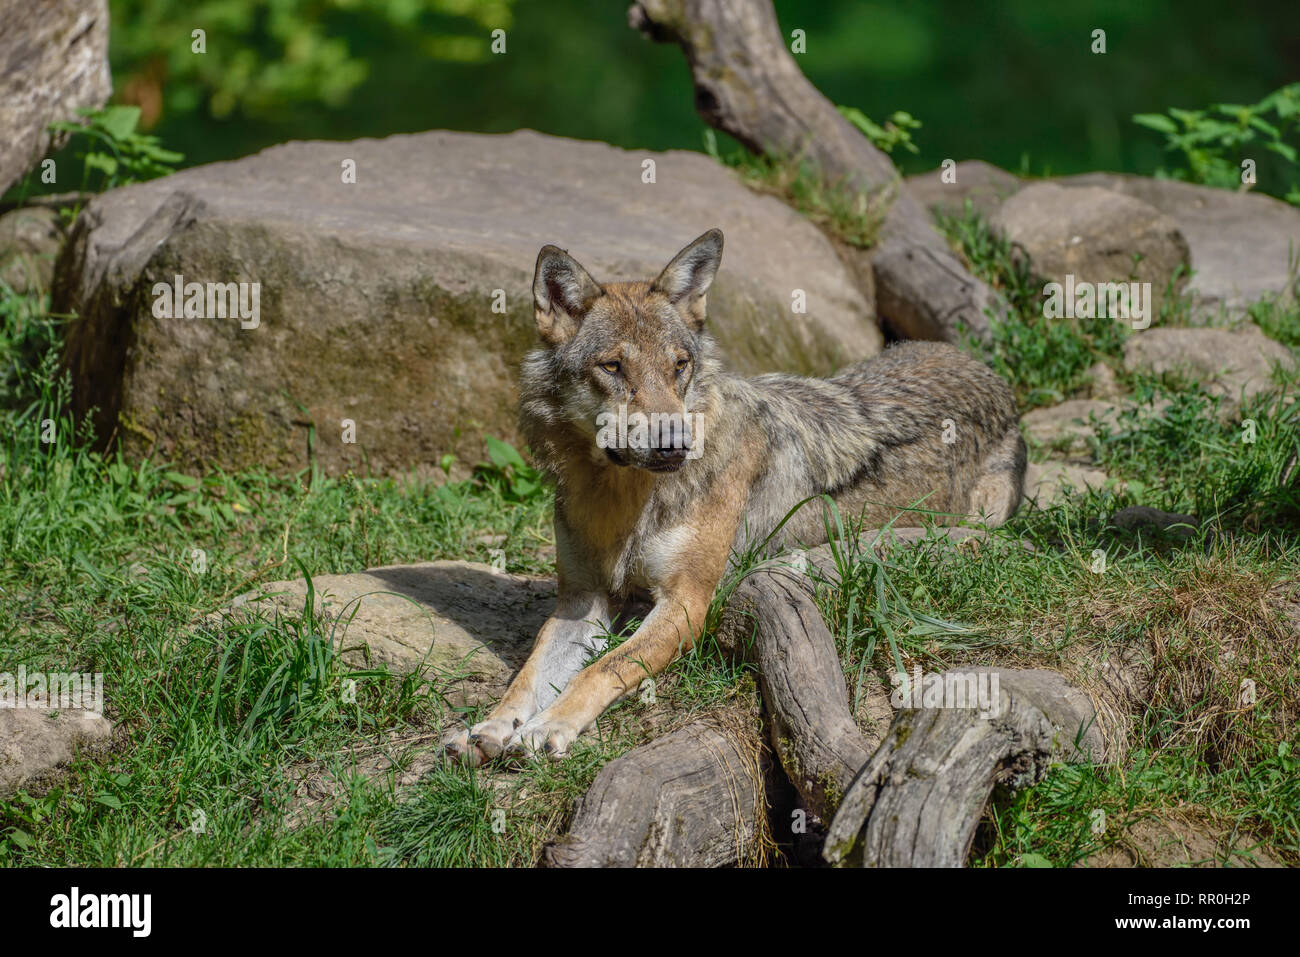 zoology / animals, mammal (mammalia), Eurasian wolf (Canis lupus lupus), Parc Animalier de Sainte-Croi, Additional-Rights-Clearance-Info-Not-Available - Stock Image